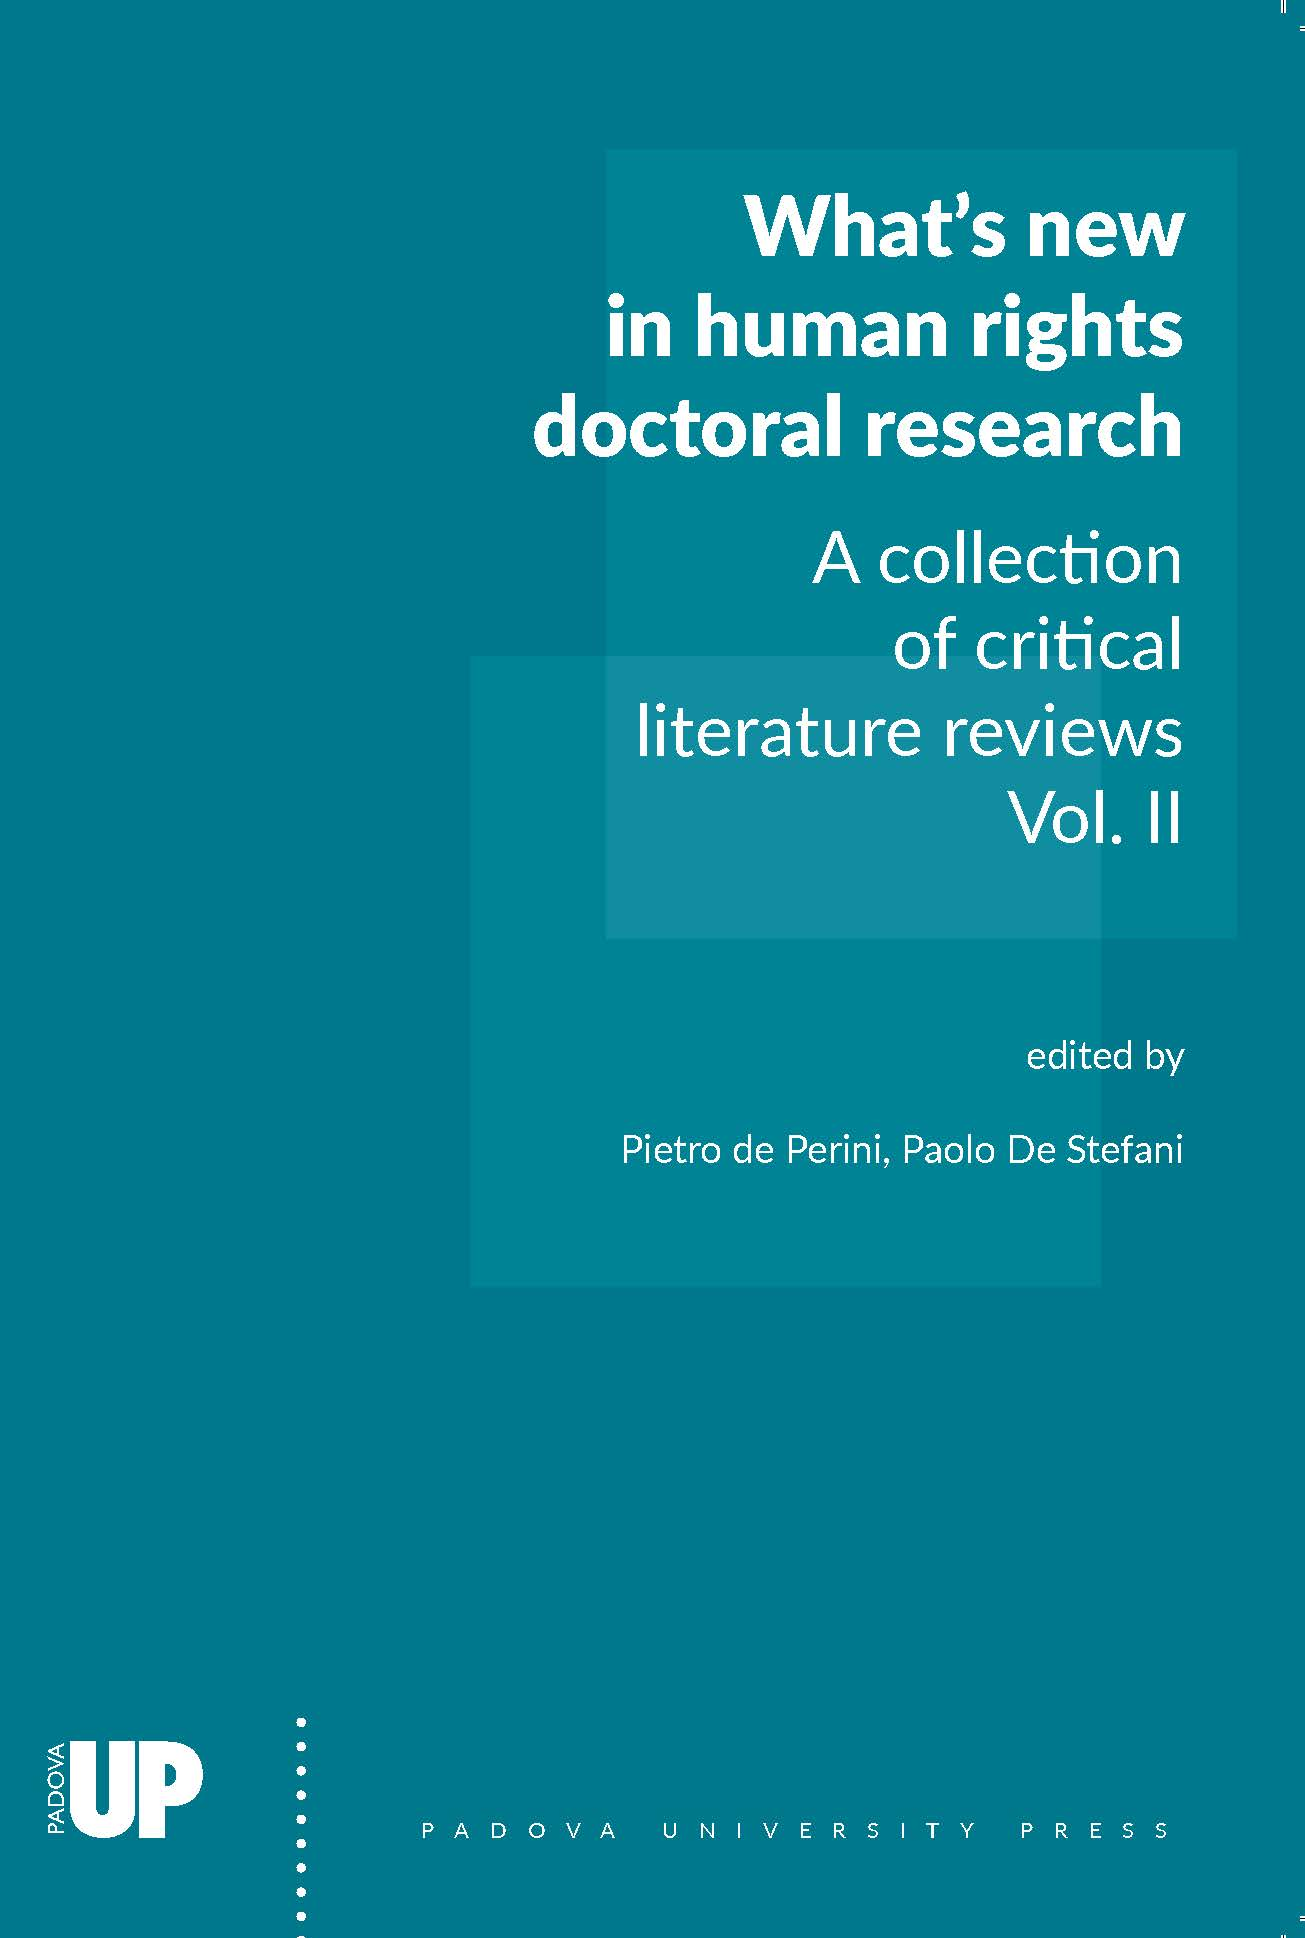 Whats new in Human Rights Doctoral Research, cover of vol. II